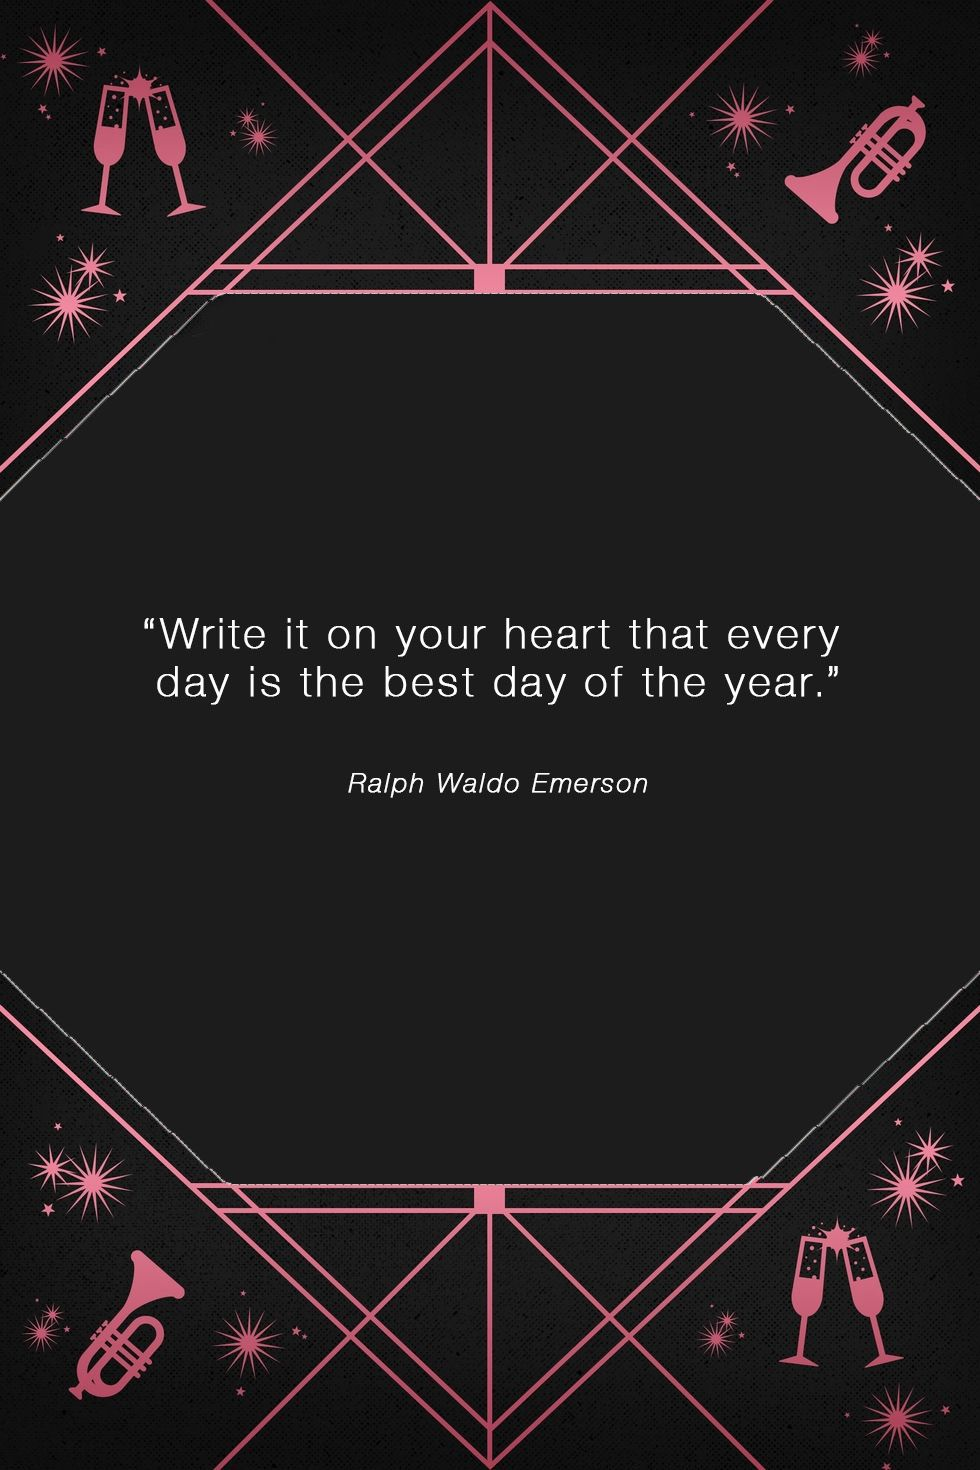 Sayings 25 Best New Year Quotes About Home Hospitality And Family Elle Decor 25 Best New Years Eve Quotes About Home Friends And Family Fun